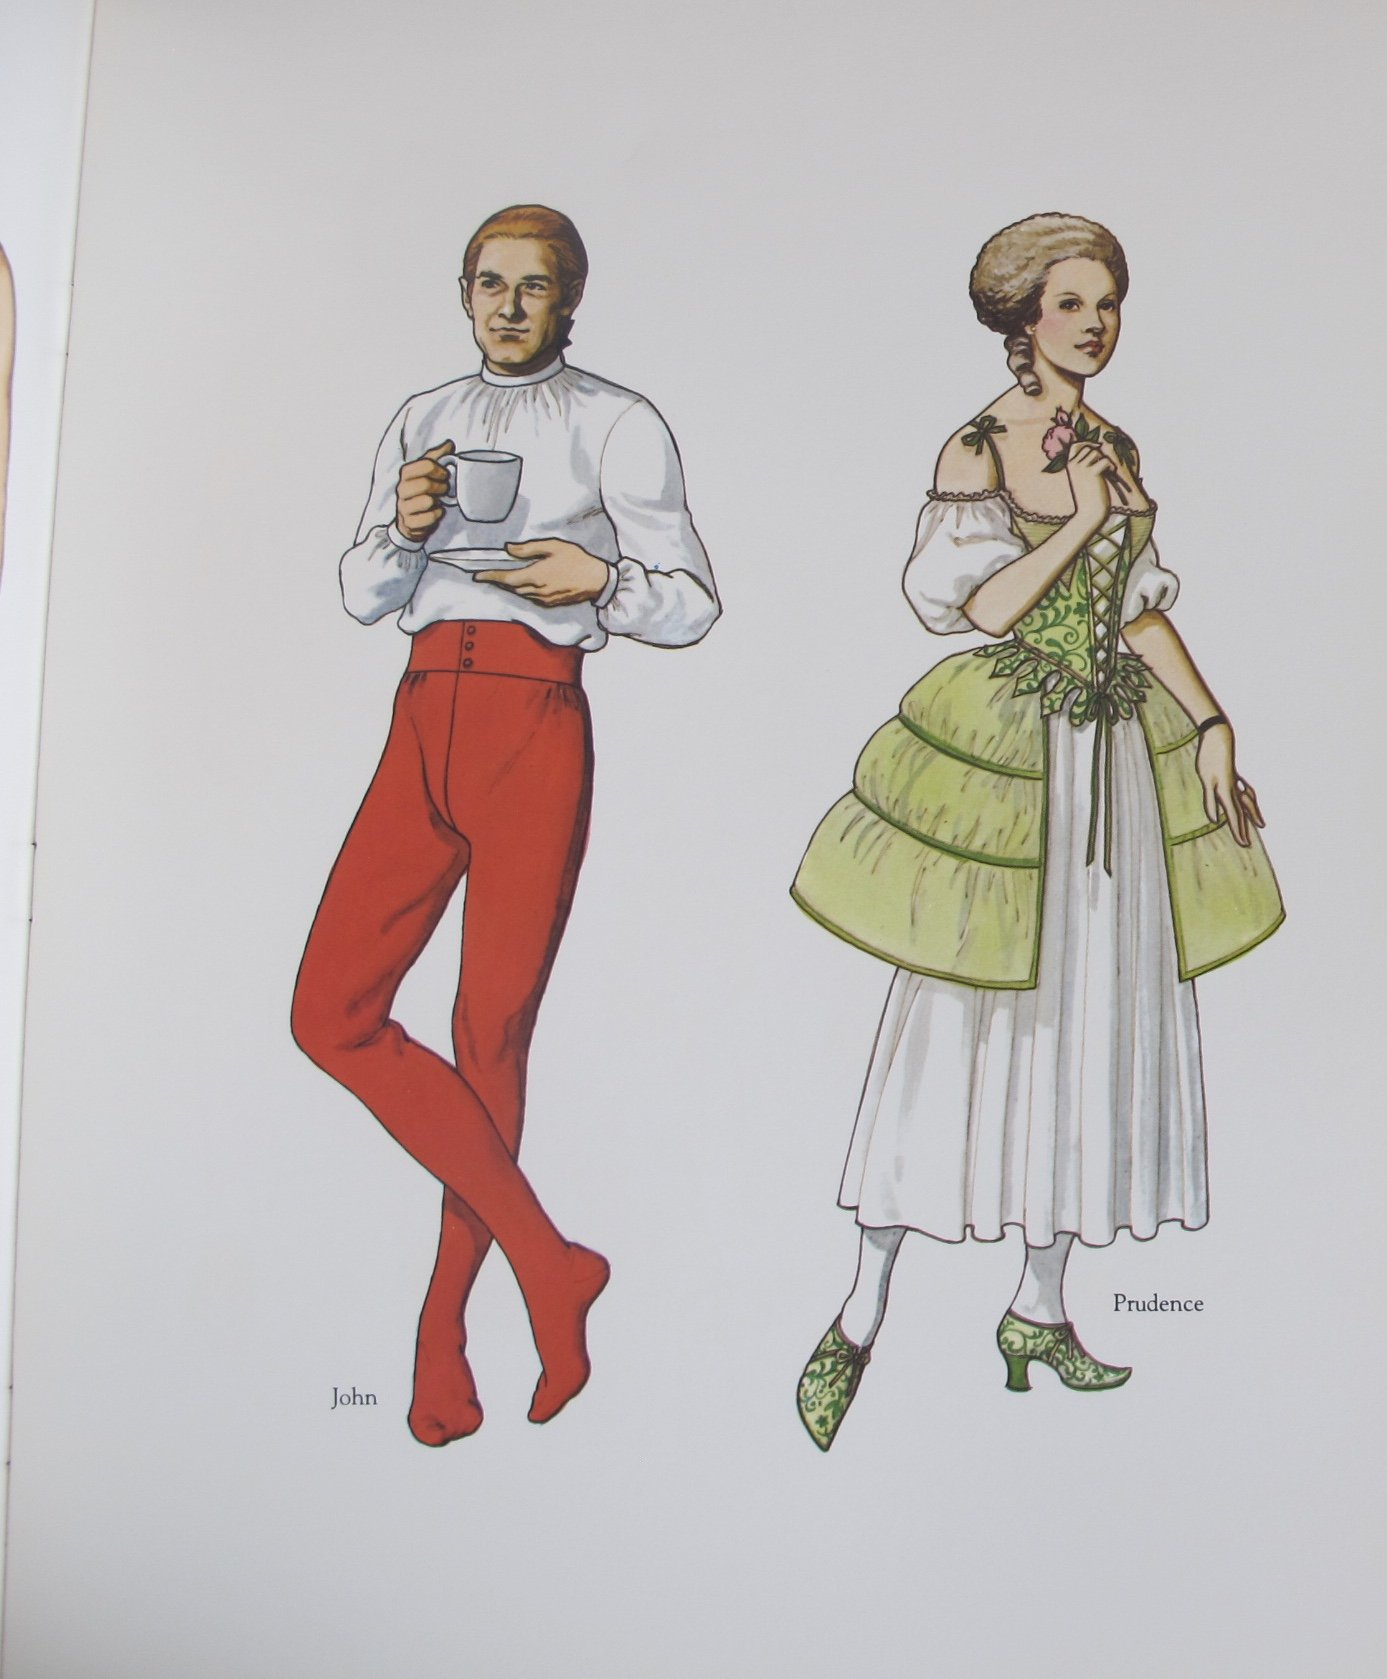 Tom Tierney AMERICAN FAMILY of The COLONIAL ERA PAPER DOLLS Book (UNCUT) in Full Color w 8 Card Stock DOLLS & 32 Card Stock COSTUMES (1983 Dover) by Unknown (Image #2)